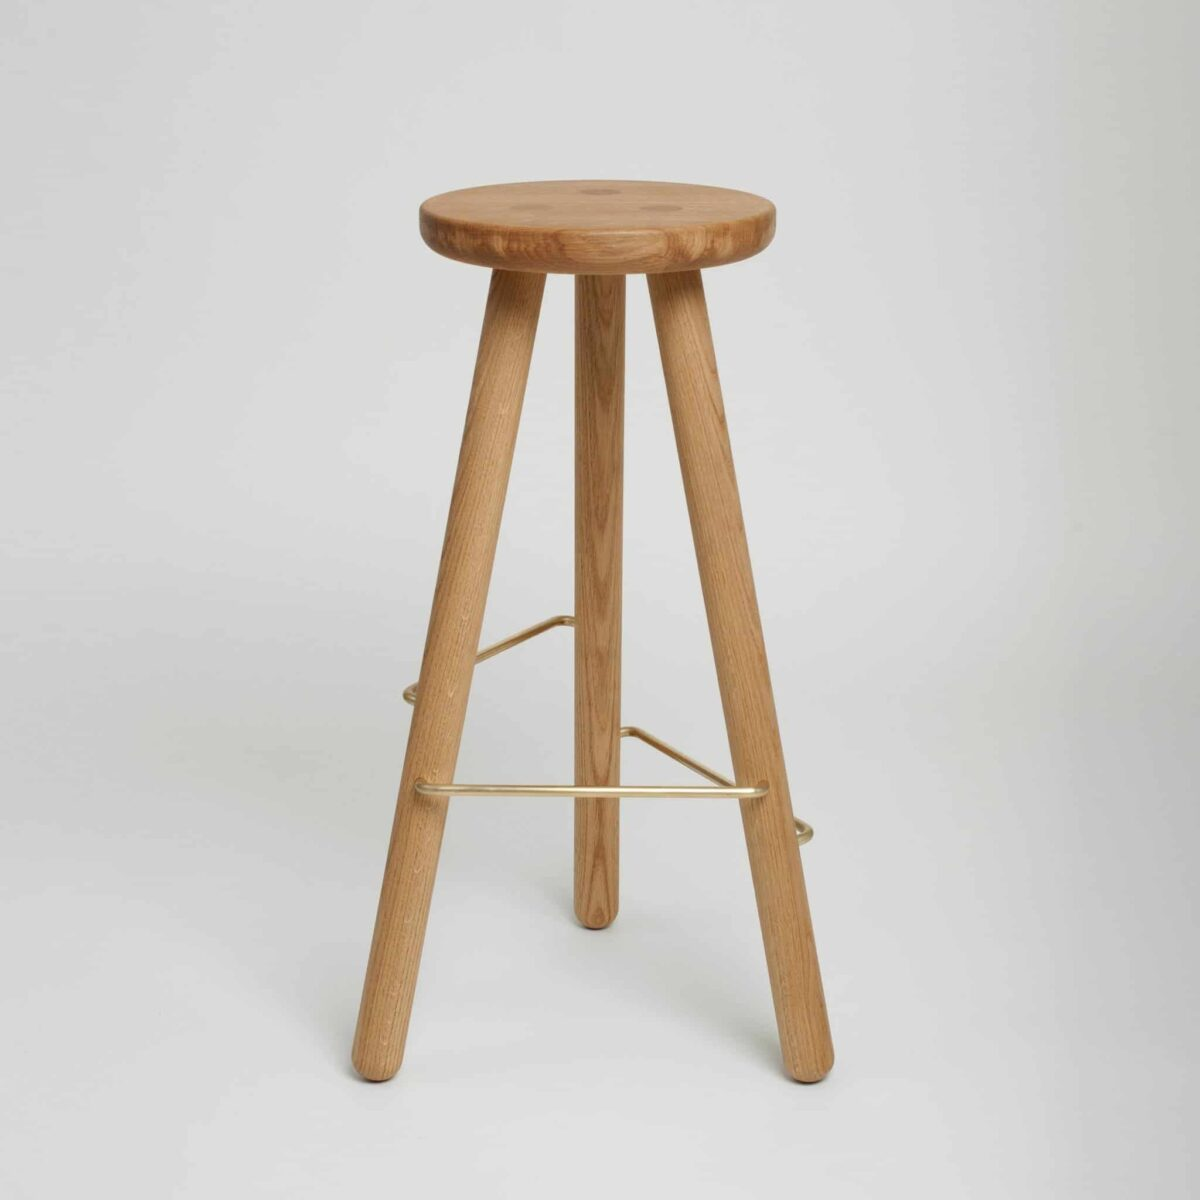 another-country-bar-stool-one-oak-natural-001_3180352c-7a99-460f-acac-b772c857cf3f.jpeg